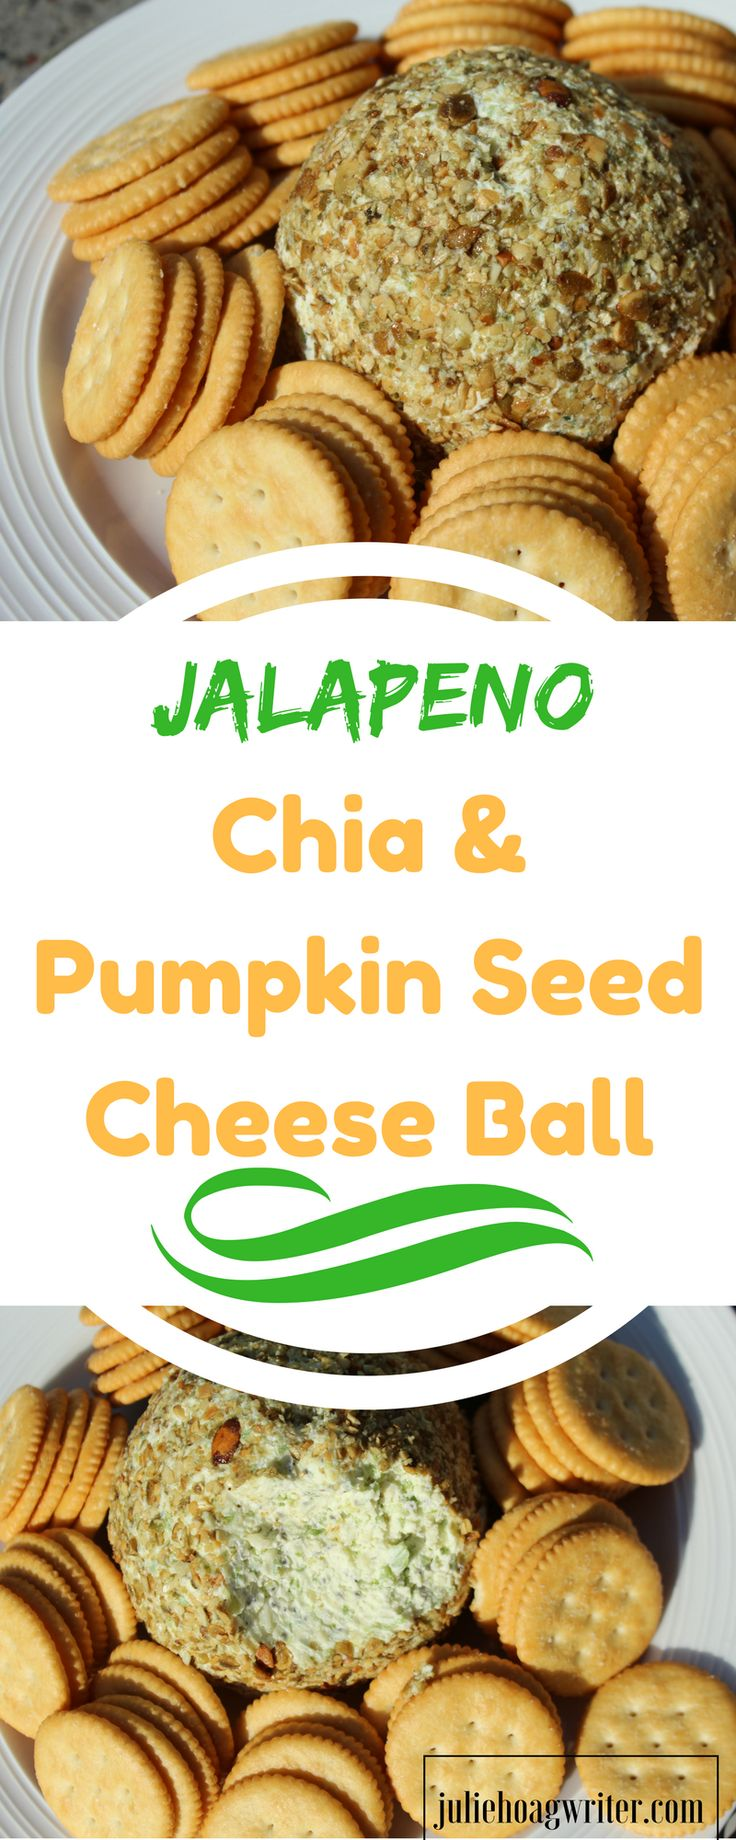 Jalapeno Chia and Pumpkin Seed Cheese Ball Appetizer recipe for a party | appetizers for a party | appetizers easy | appetizers for a crowd | appetizers recipes easy | Christmas appetizers | appetizers easy finger foods | recipe for appetizers | recipe for appetizers finger foods | New Years Eve appetizers finger foods | Thanksgiving appetizer ideas | holiday entertaining | vegetarian appetizer | vegetarian recipes | party food | party menu ideas | chia seed recipes @juliehoagwriter.com